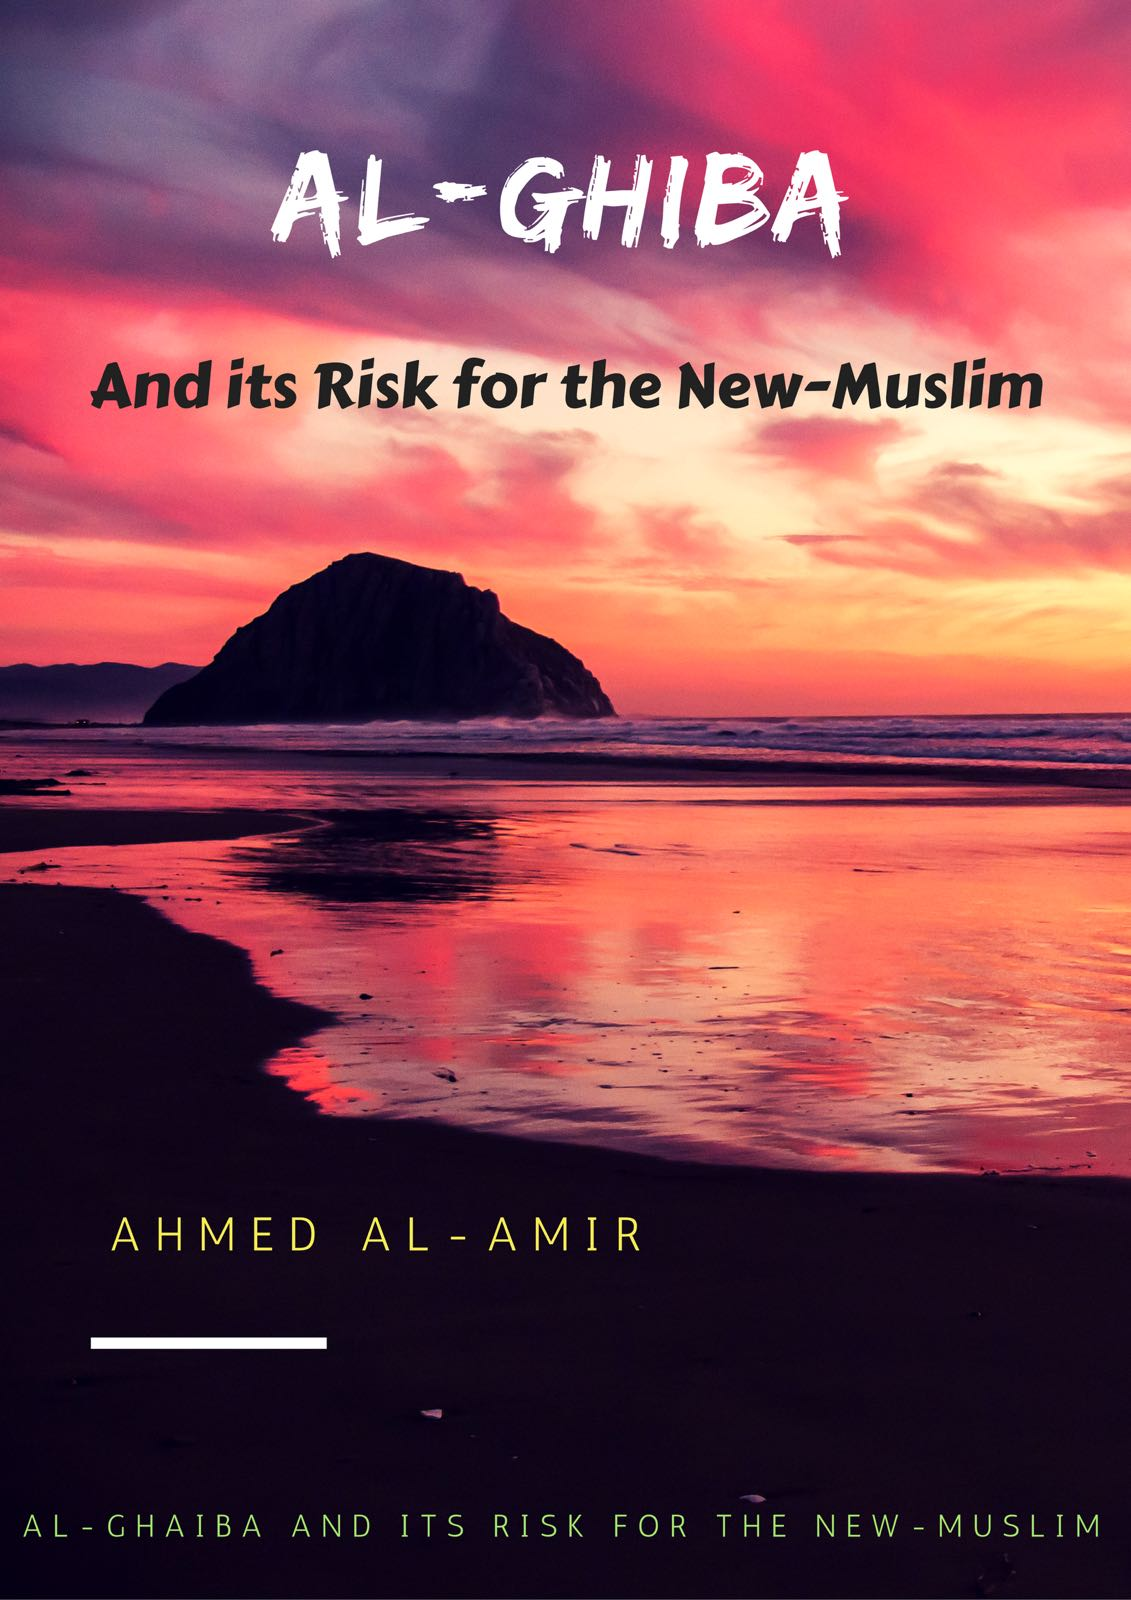 Backbiting (and its danger on the new Muslim)